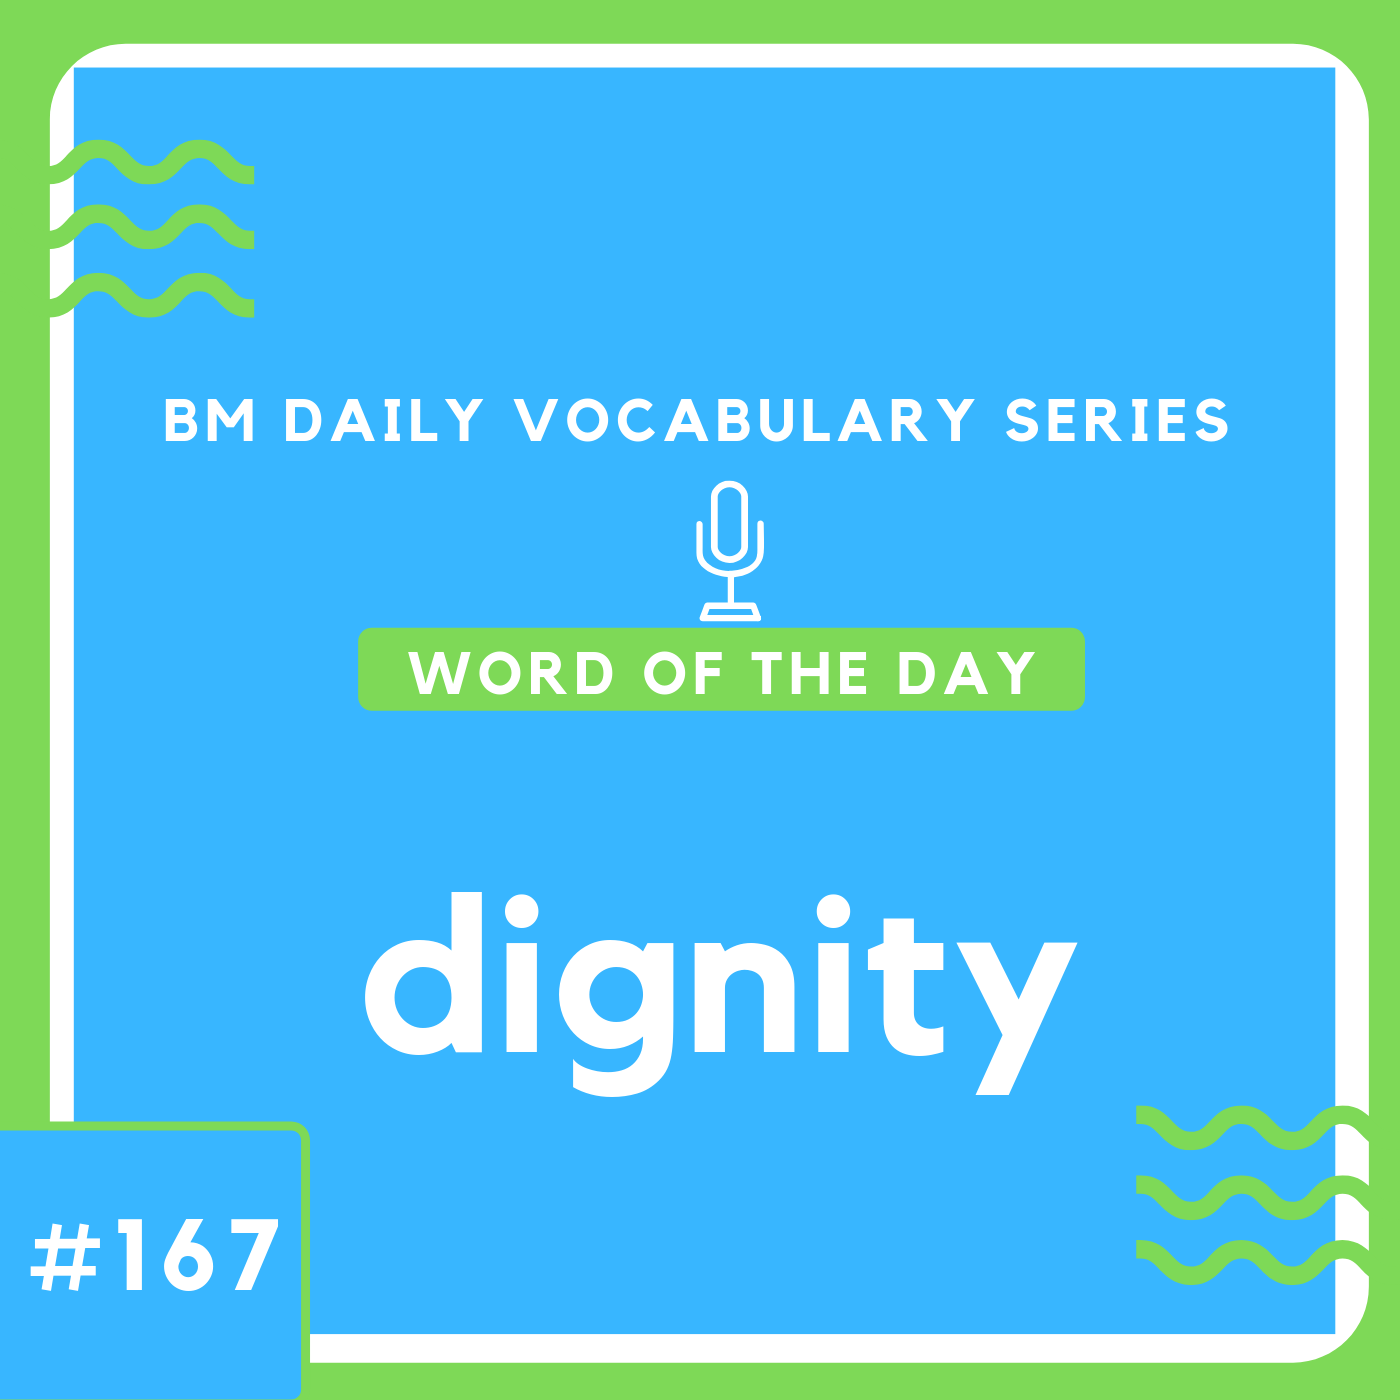 200 BM Daily Vocabulary #167 | dignity